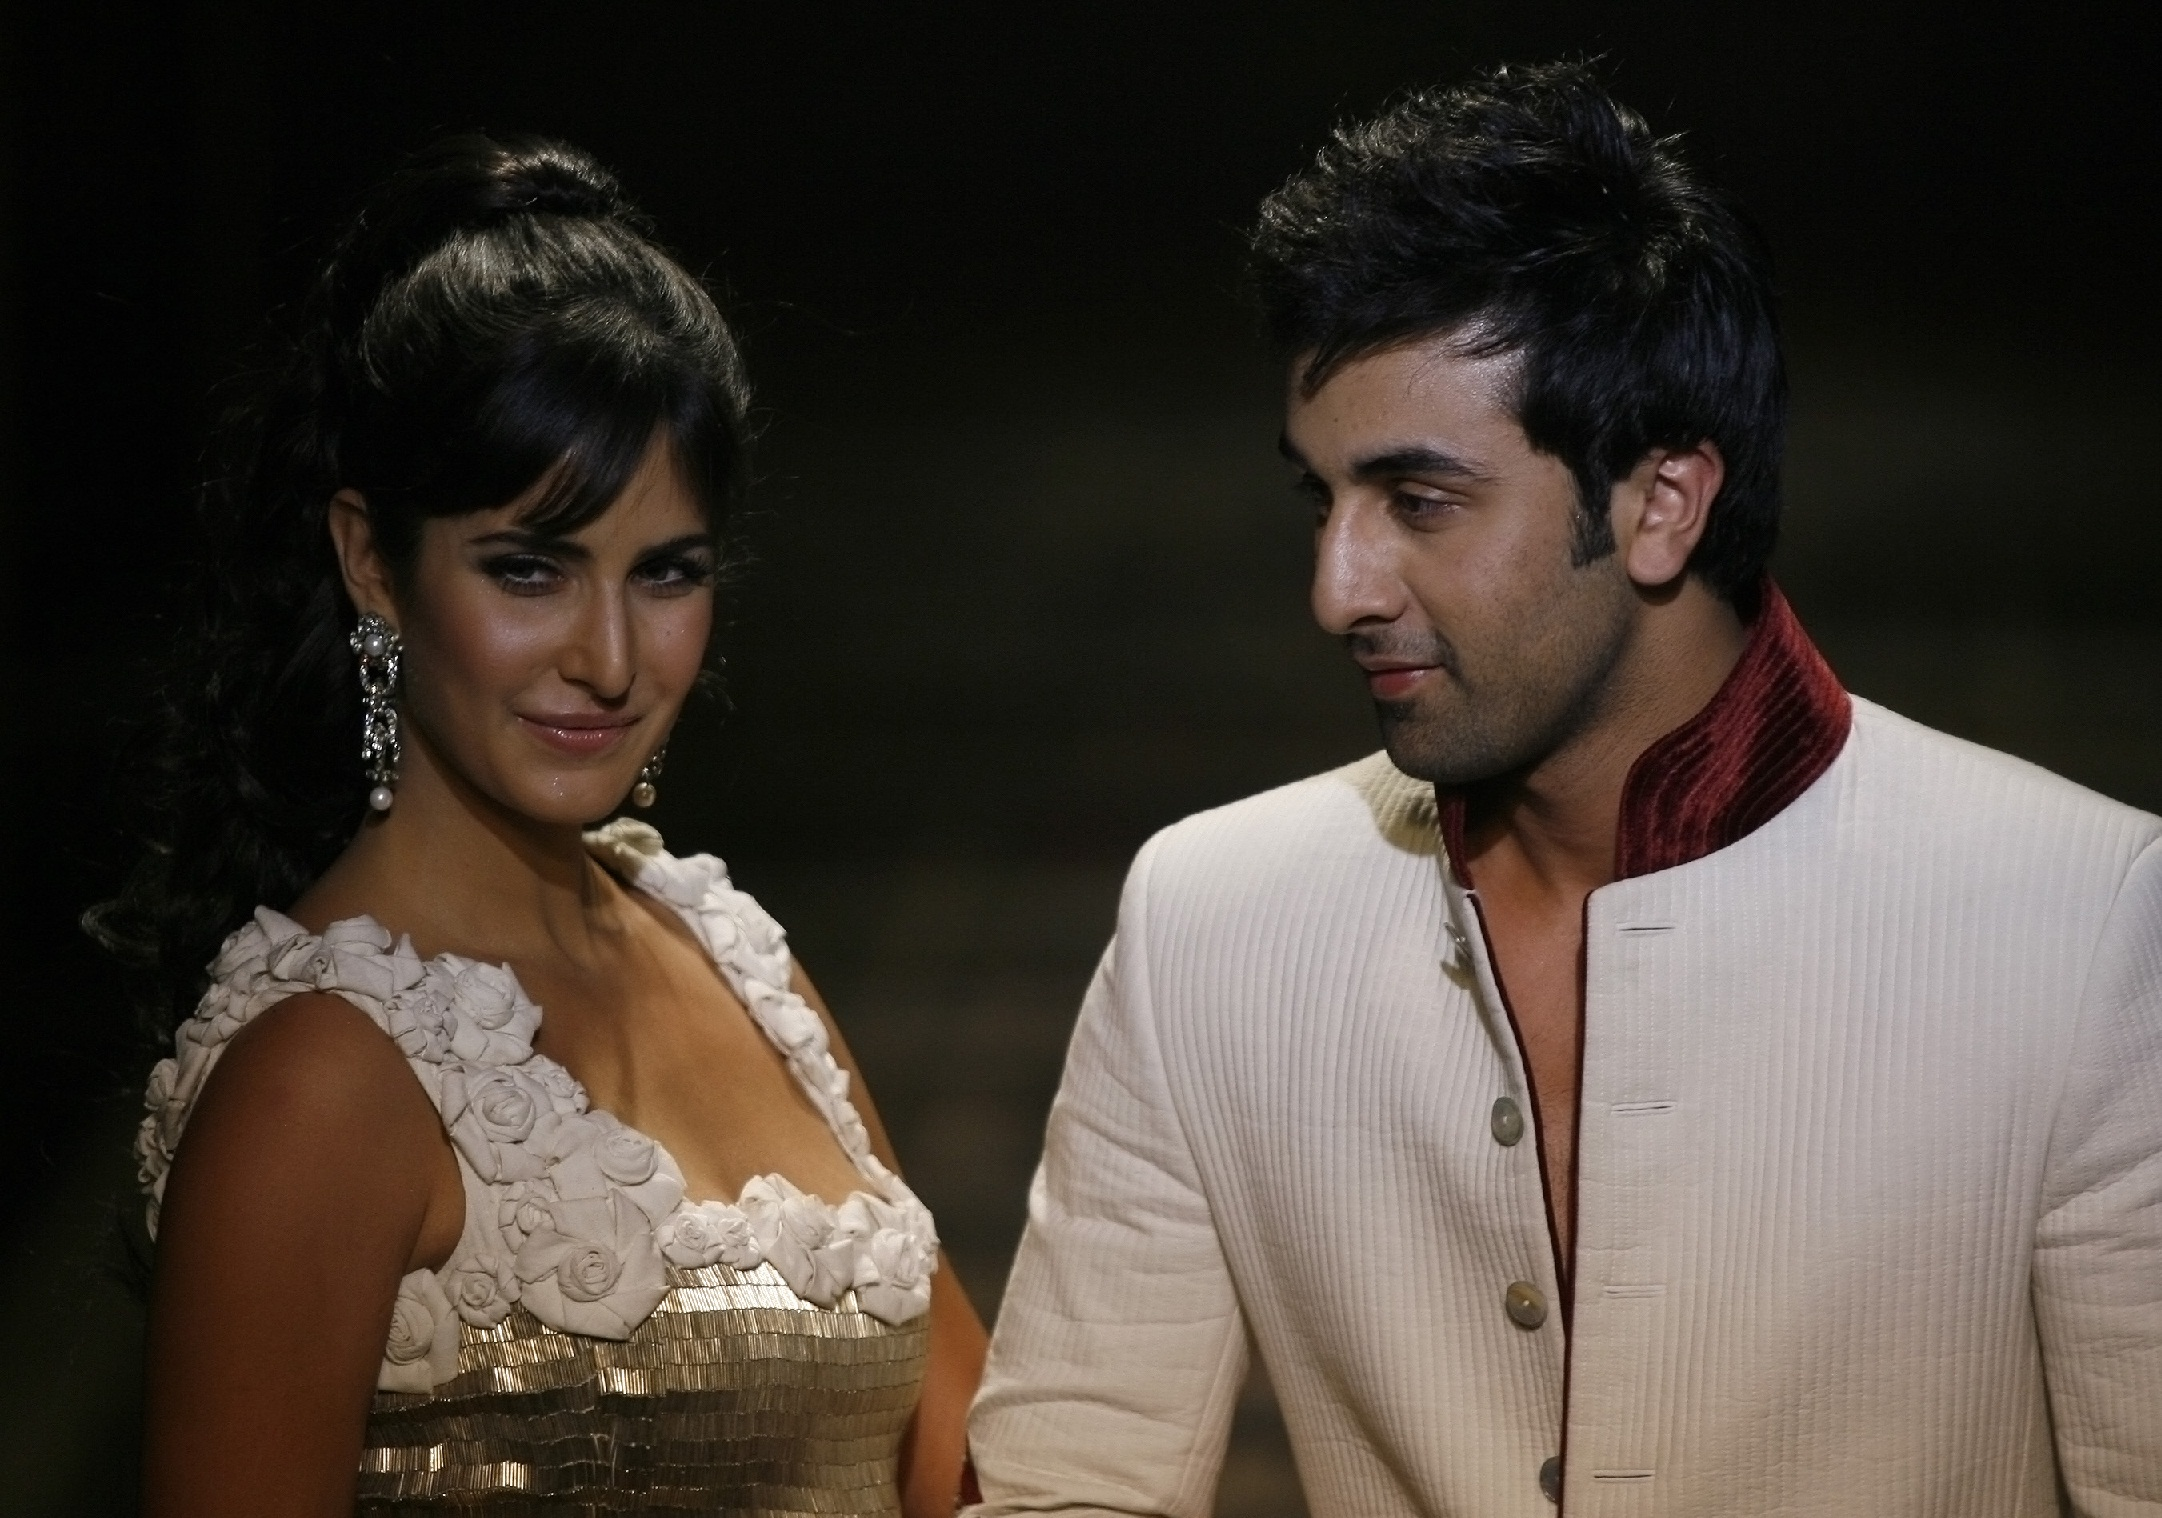 RANBIR KAPOOR POSTPONES THE RELEASE OF 'JAGGA JASOOS' 1